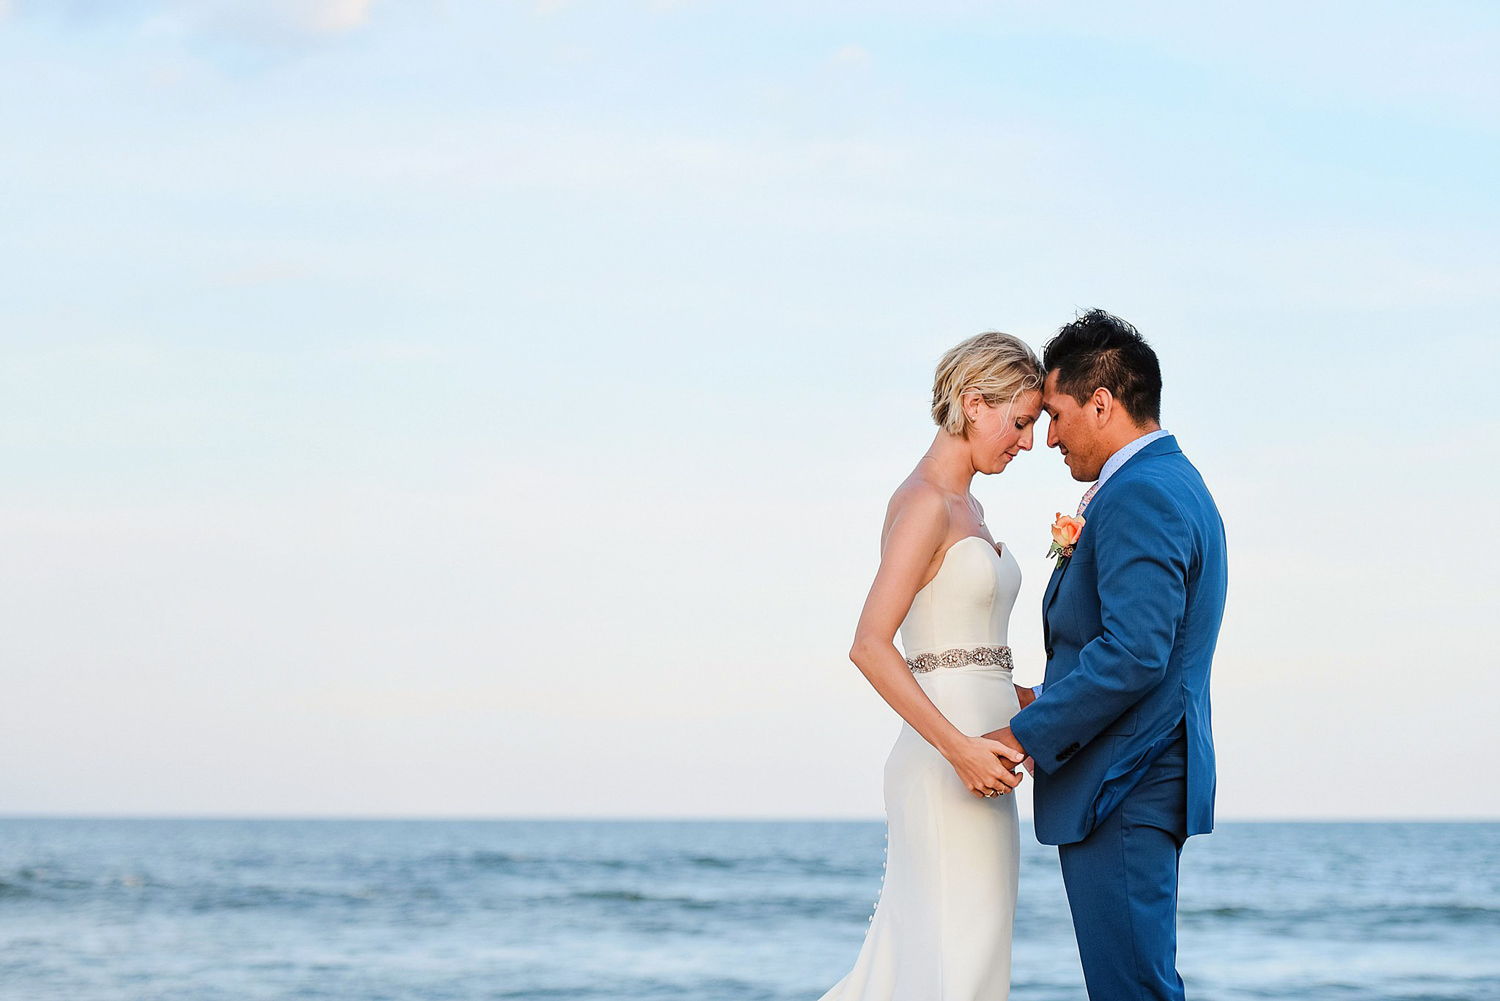 bride-and-groom-on-sandbridge-beach-blue-horizon-wedding-melissa-bliss-photography.jpg